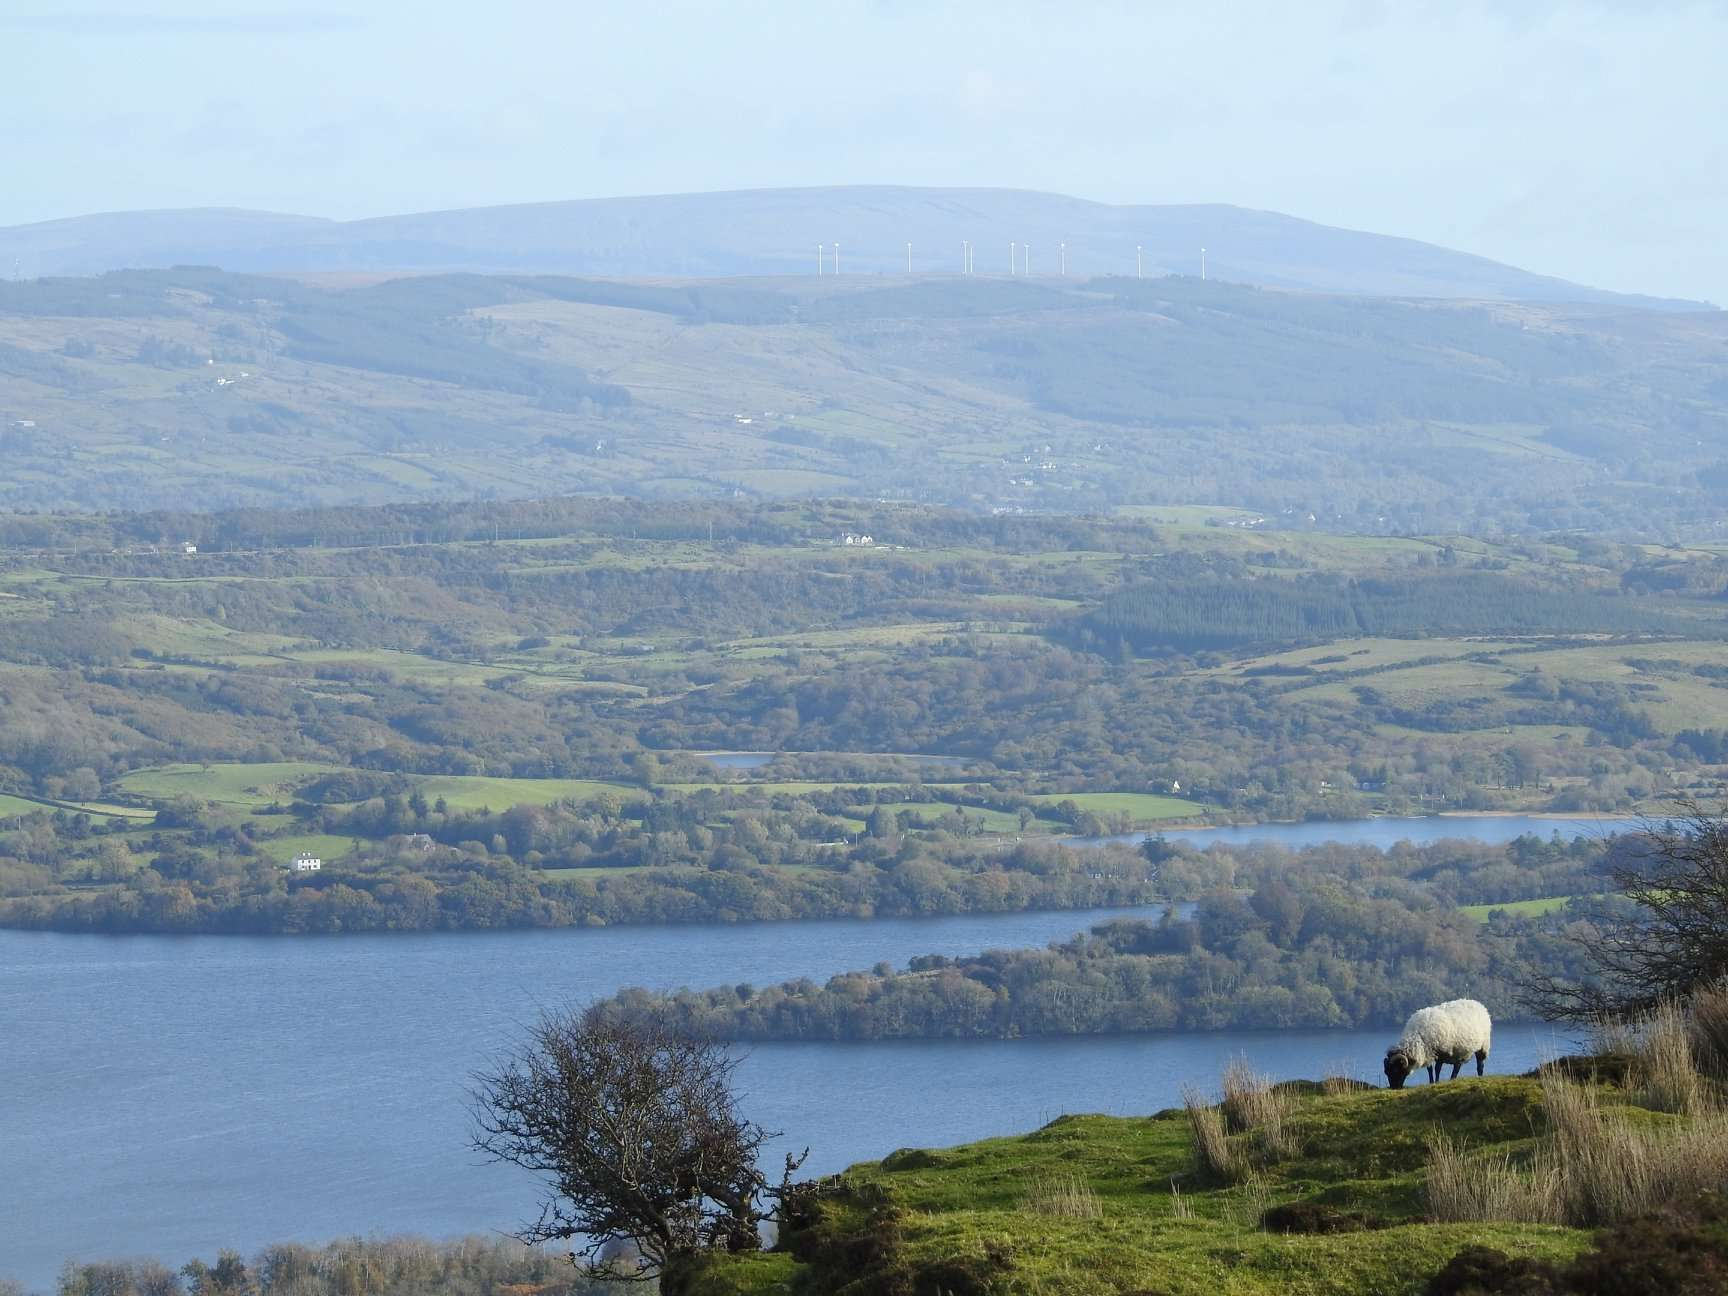 View over Sligo lakes from high. Sheep in foreground